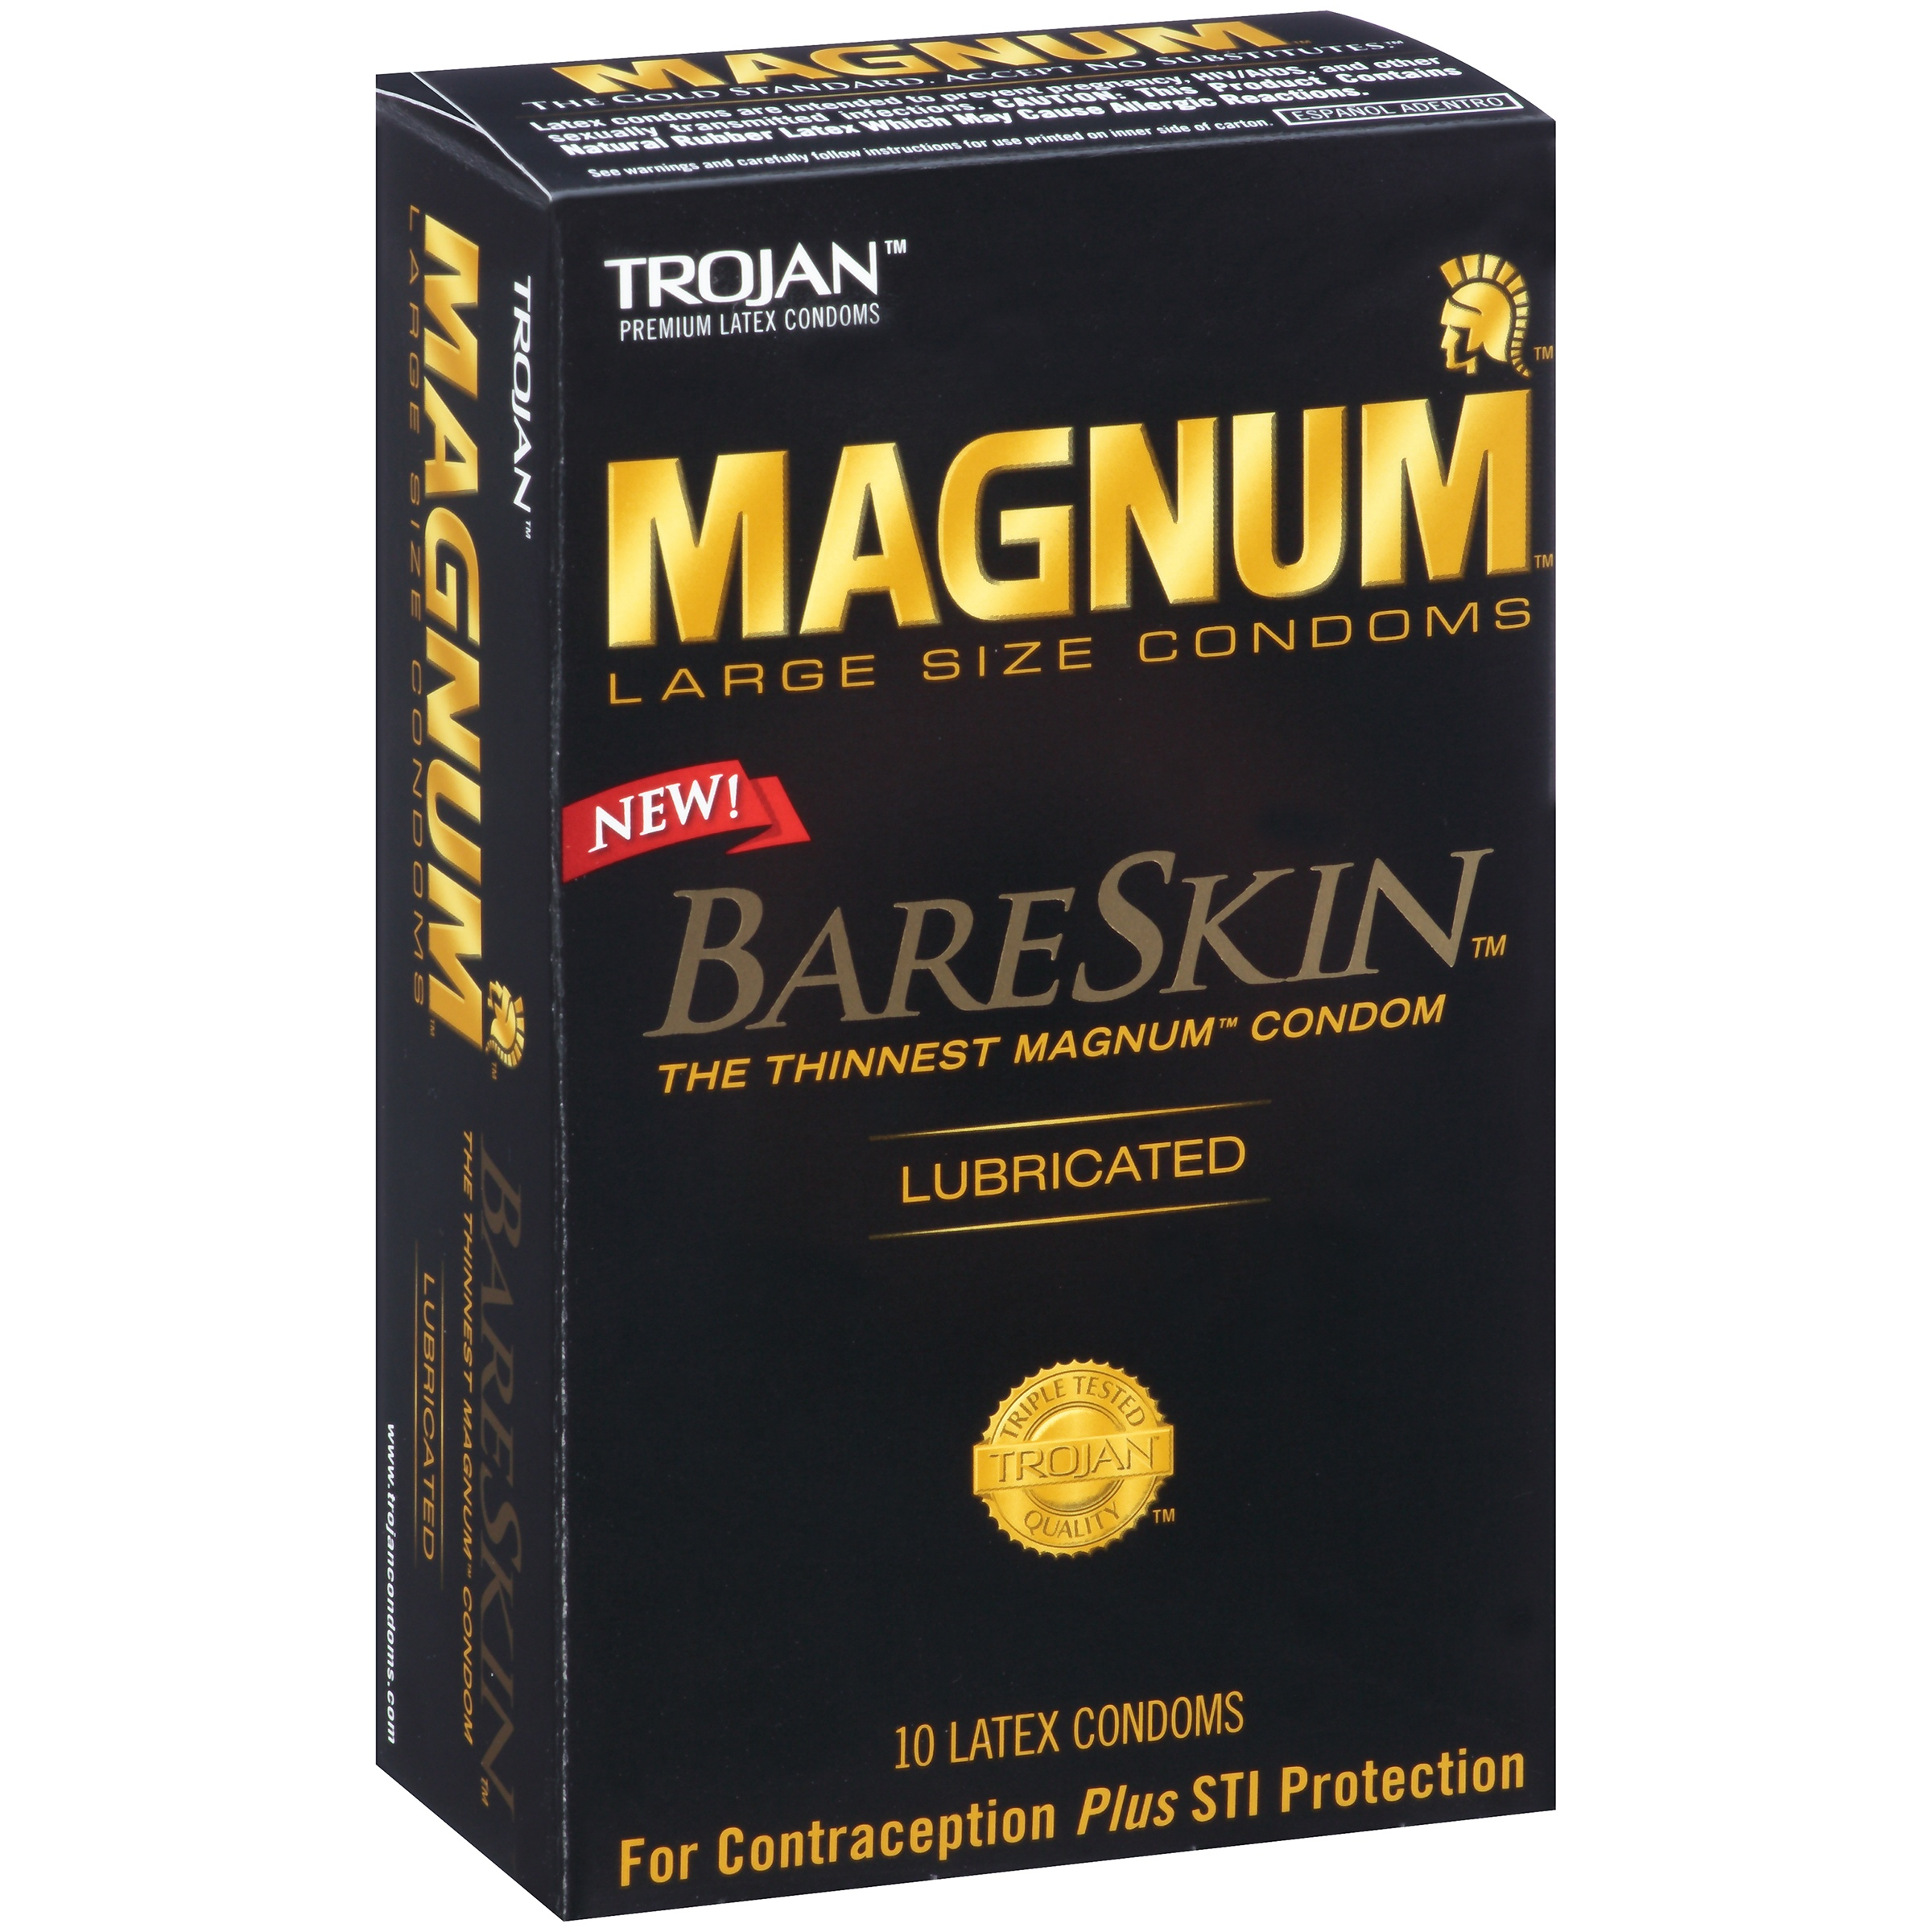 Trojan Magnum BareSkin Large Size Lubricated Latex Condoms - 10 CT ...